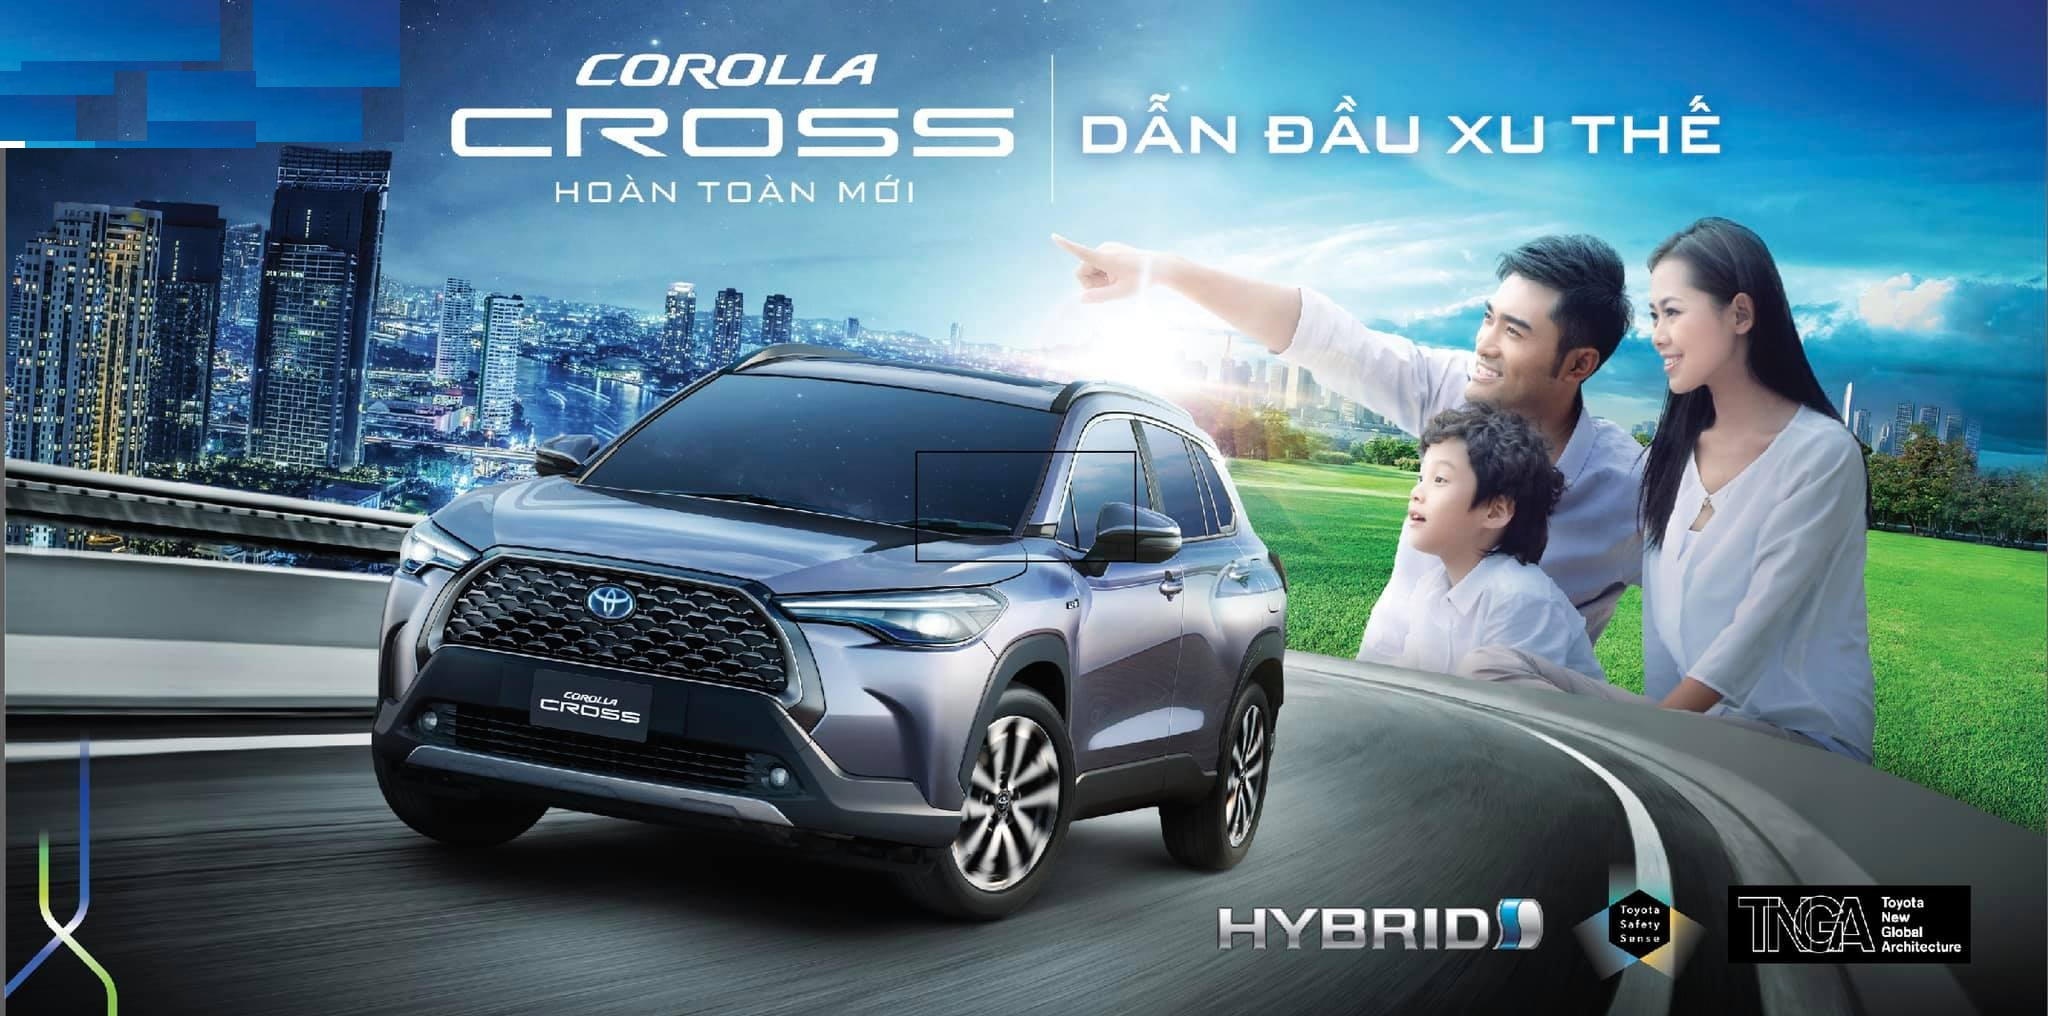 toyota-collora-cross-ha-noi